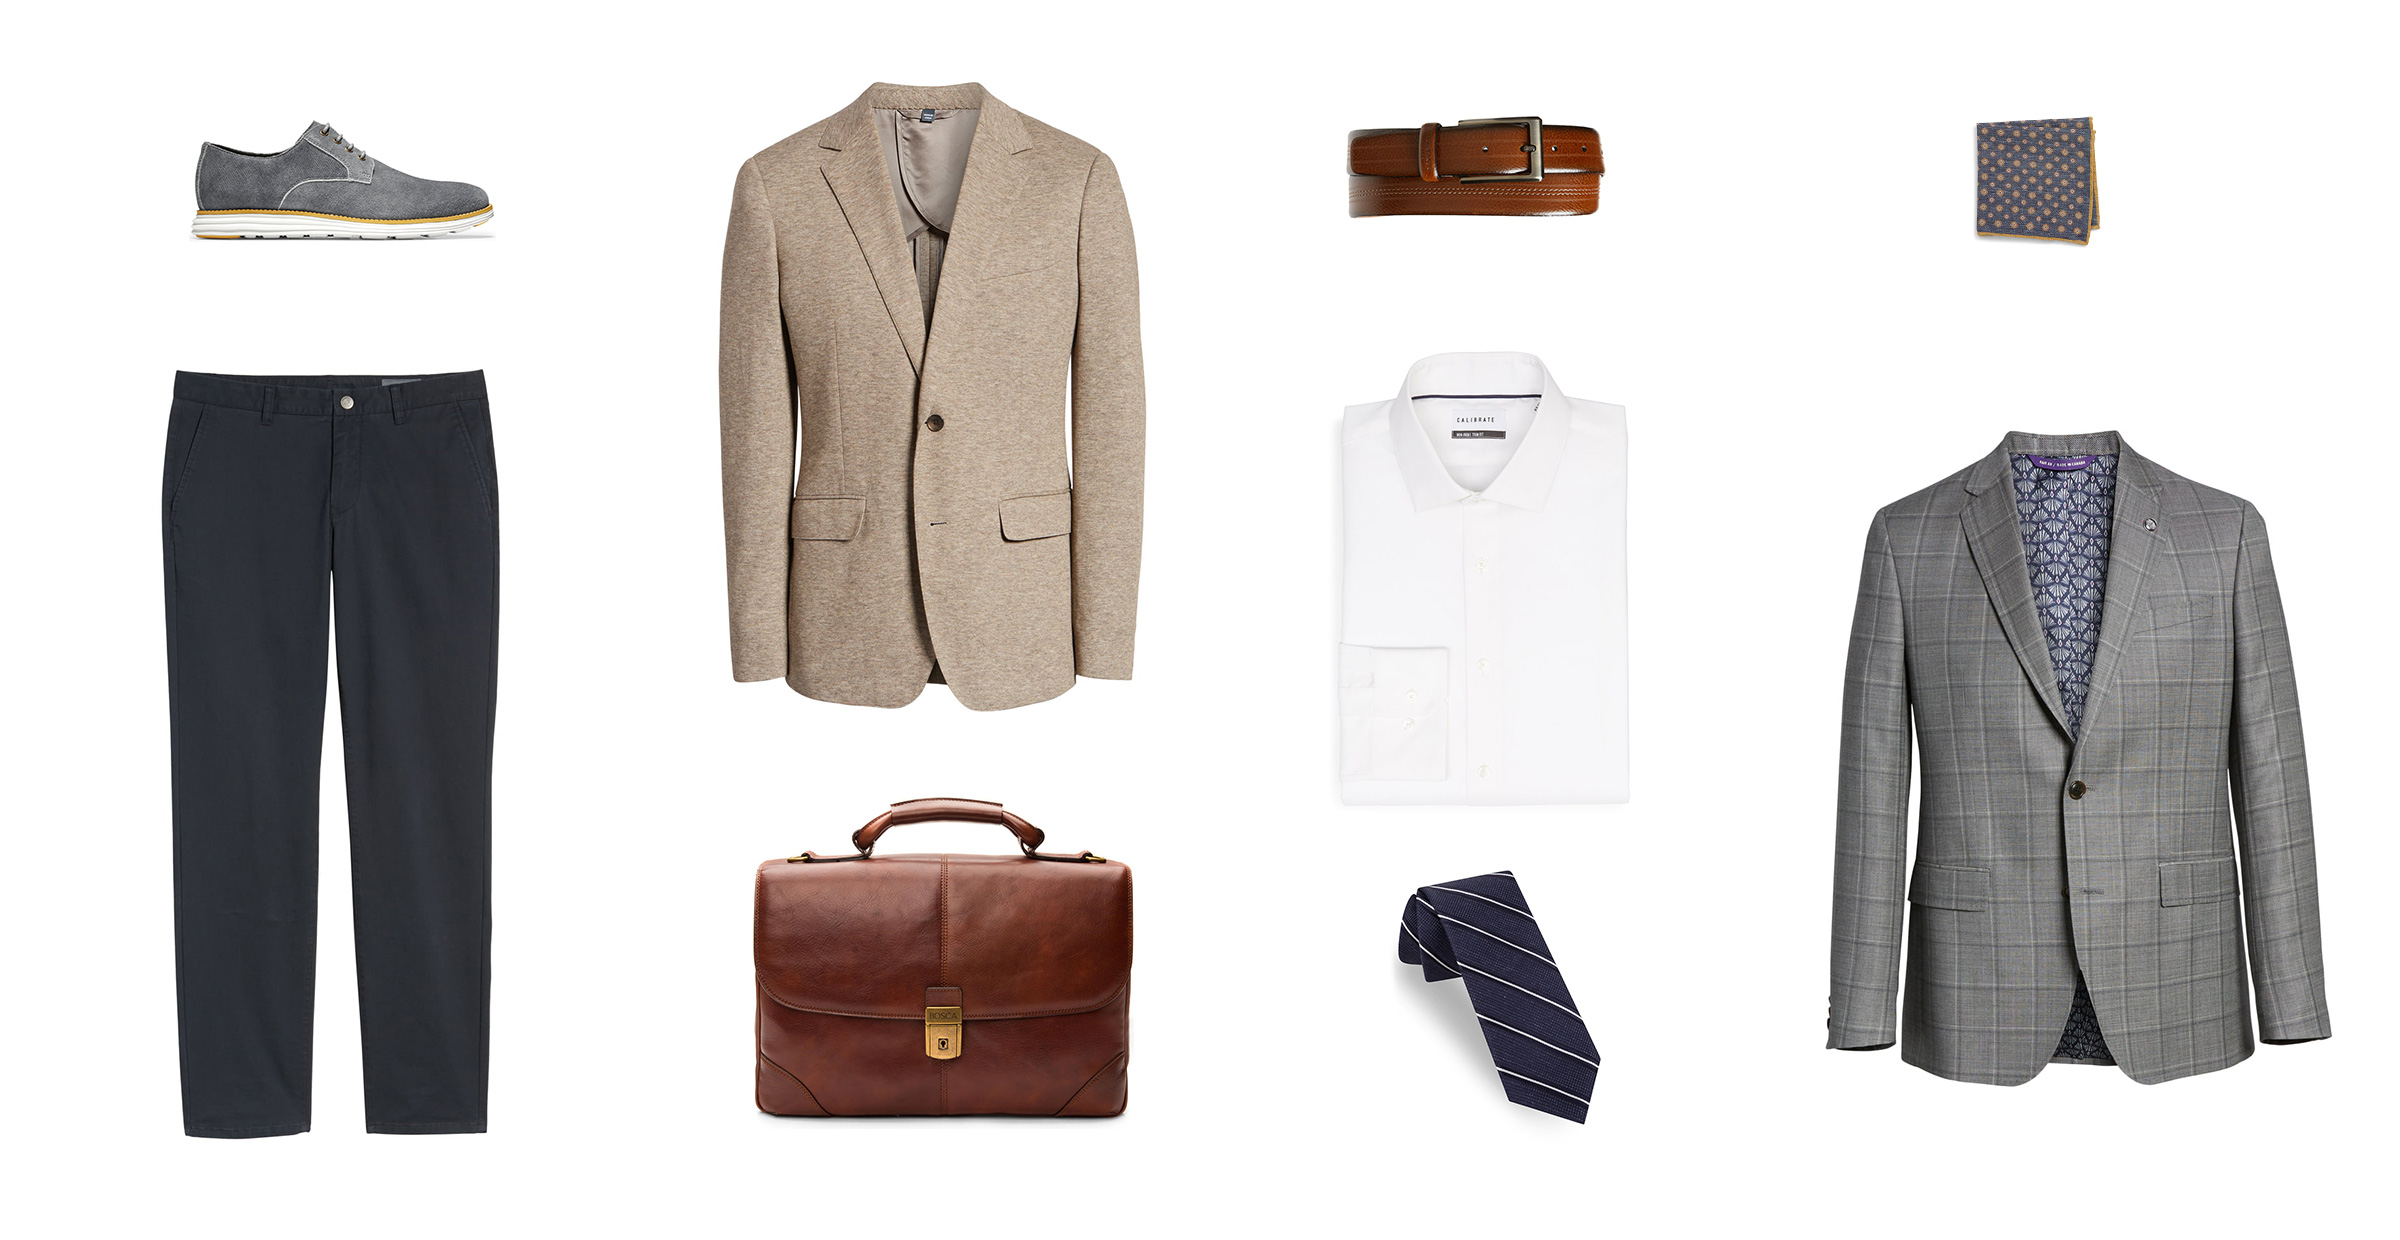 Interview Outfits for the Professional and the Creative